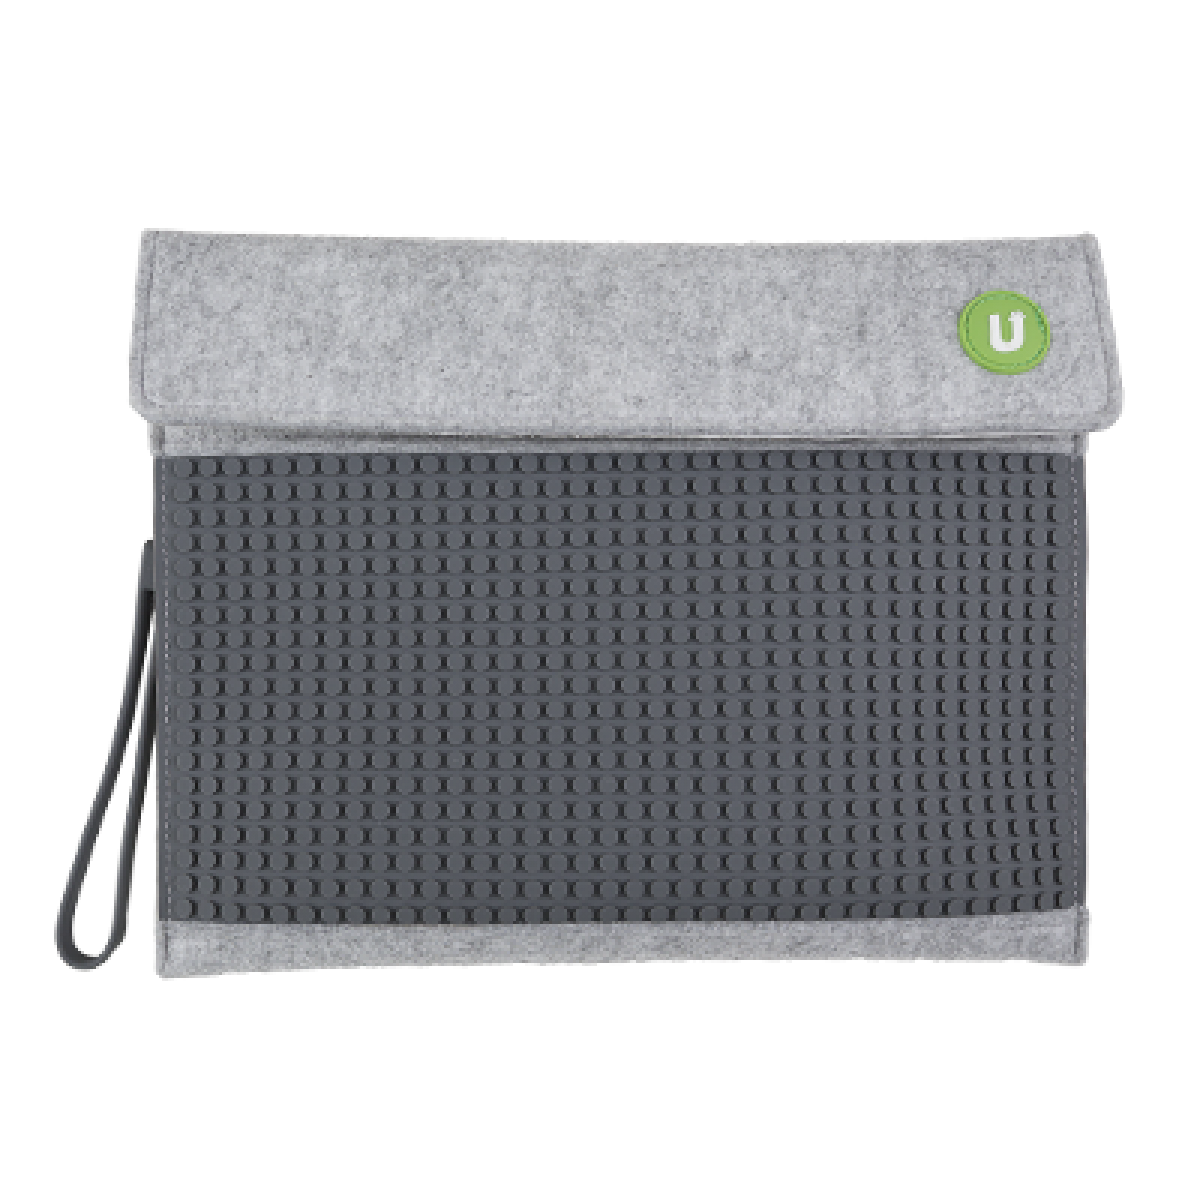 UPixel Pixel iPad / Tablet Case - Grey